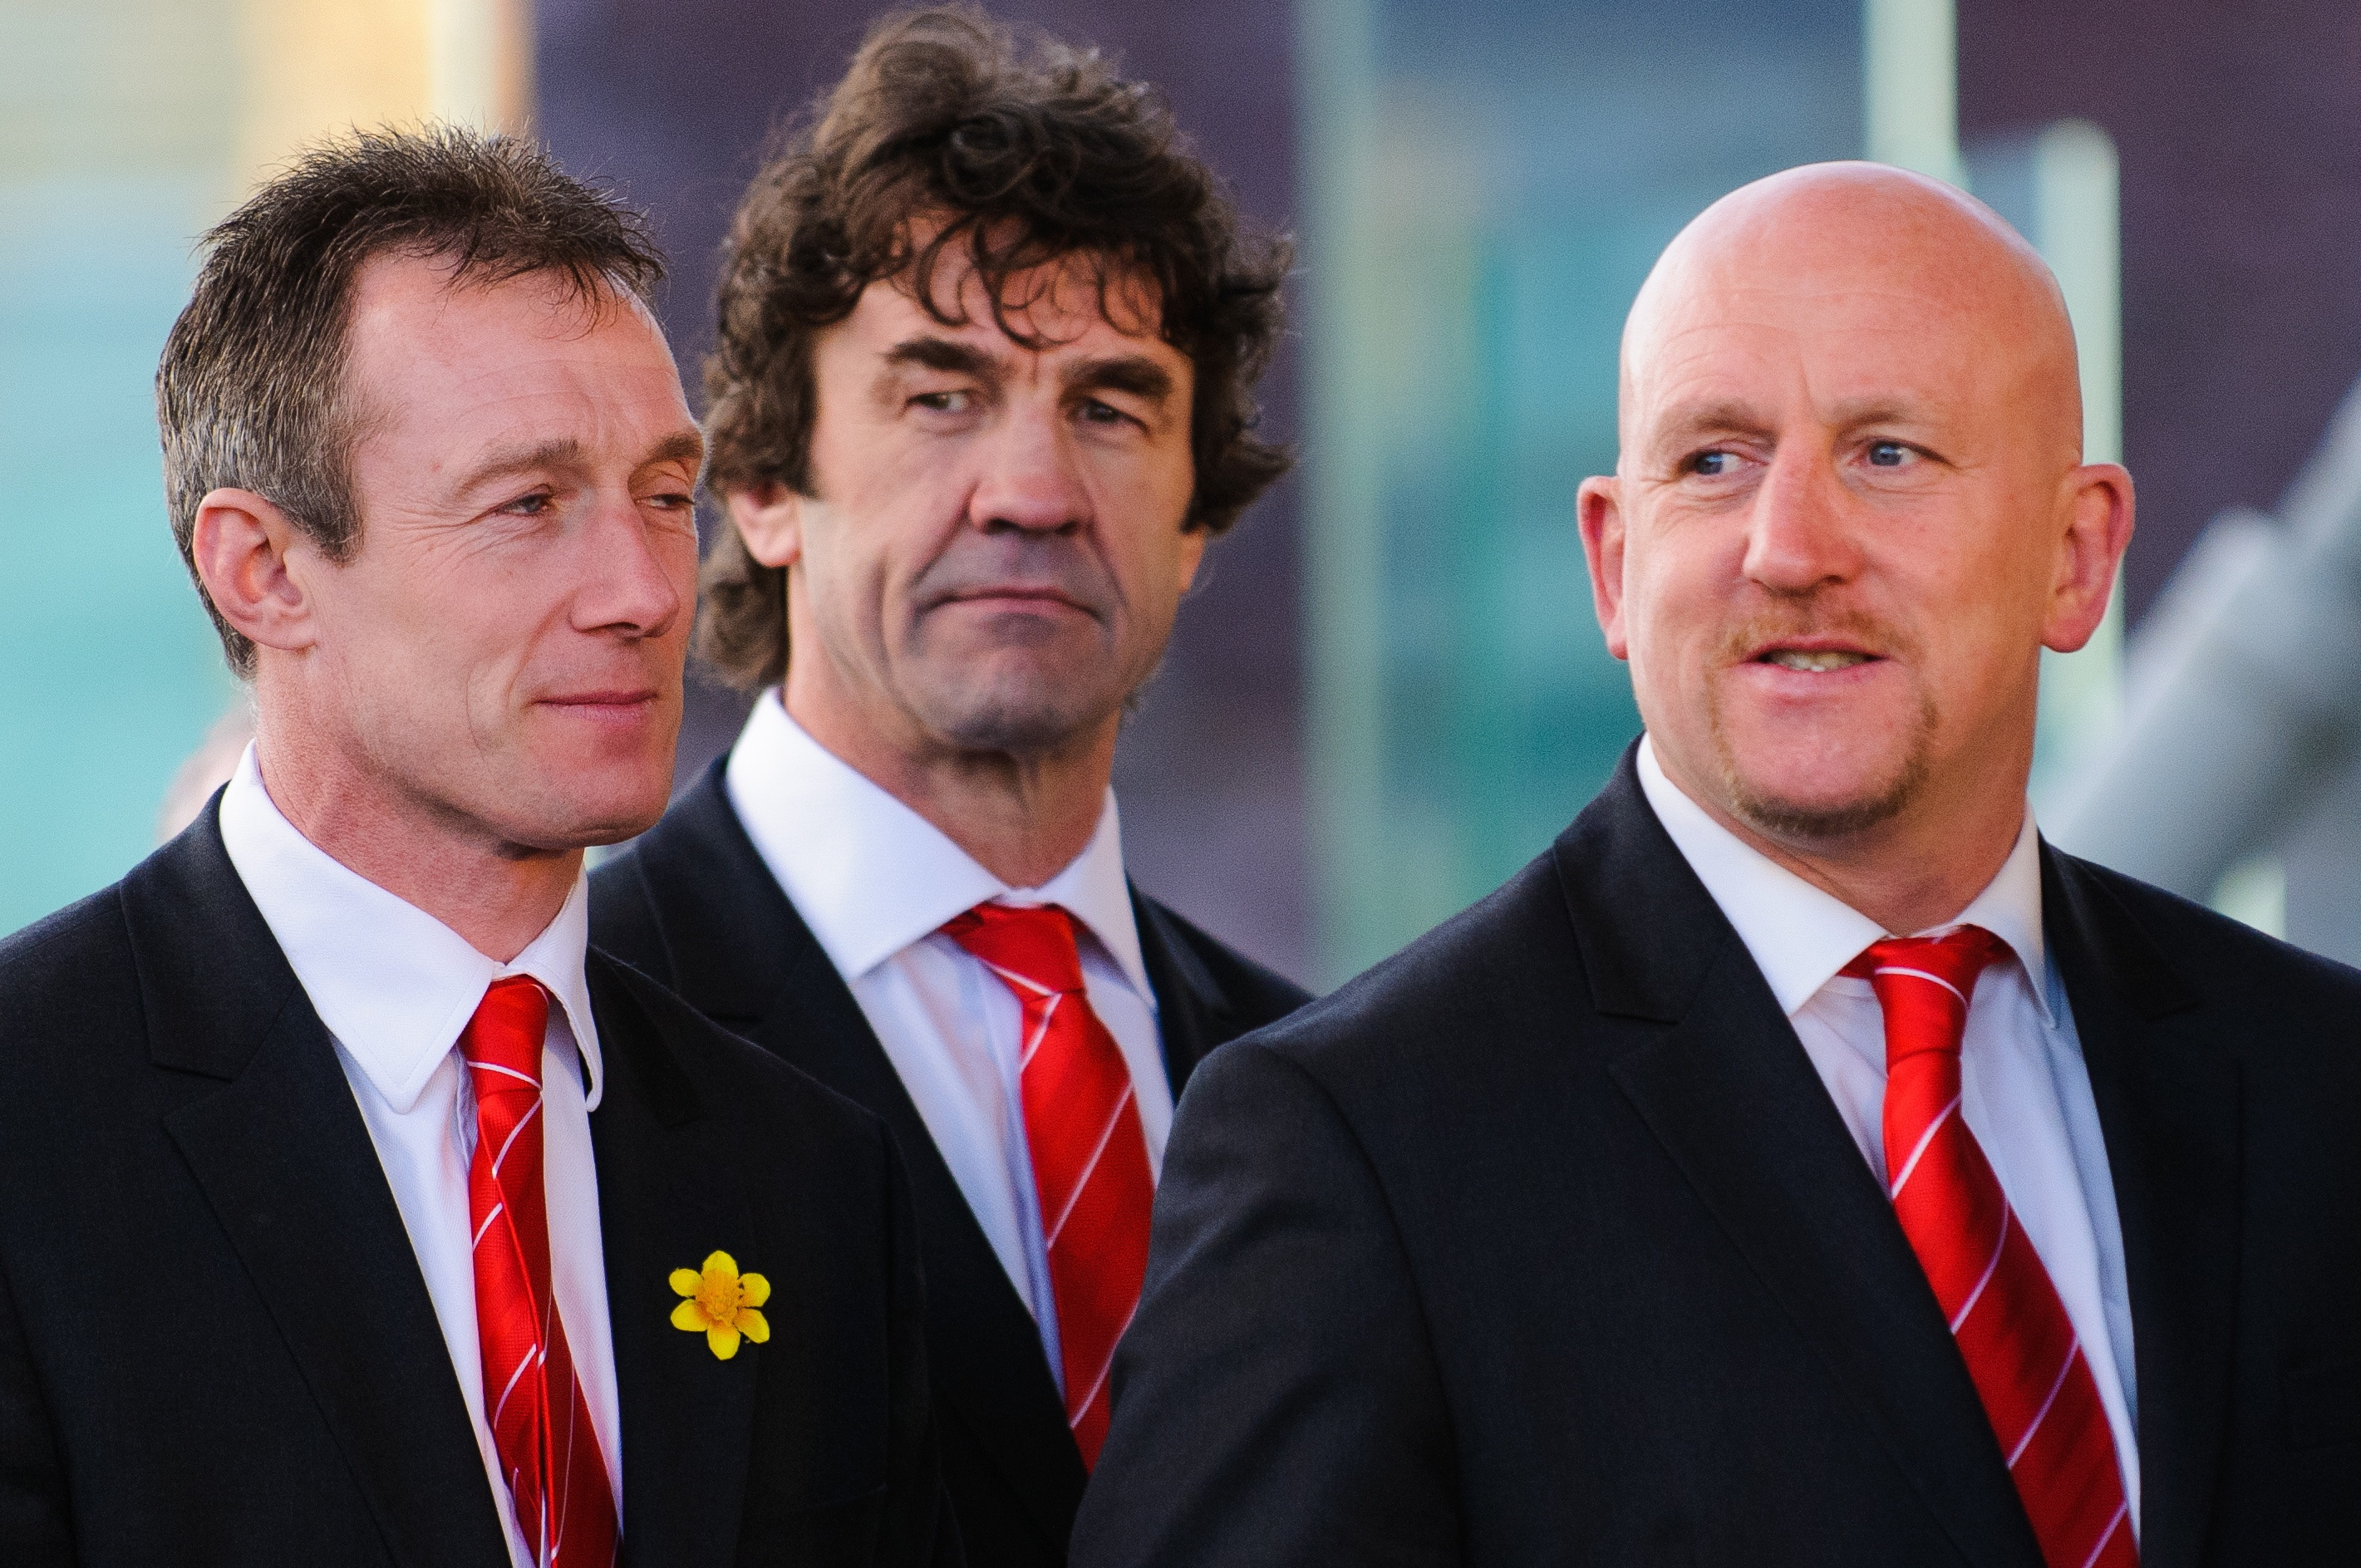 Robert Howley, Mark Davies and Sean Edwards arrive. Wales Grand Slam Celebration, Senedd 19 March 2012 / CC 2.0 Kafuffle